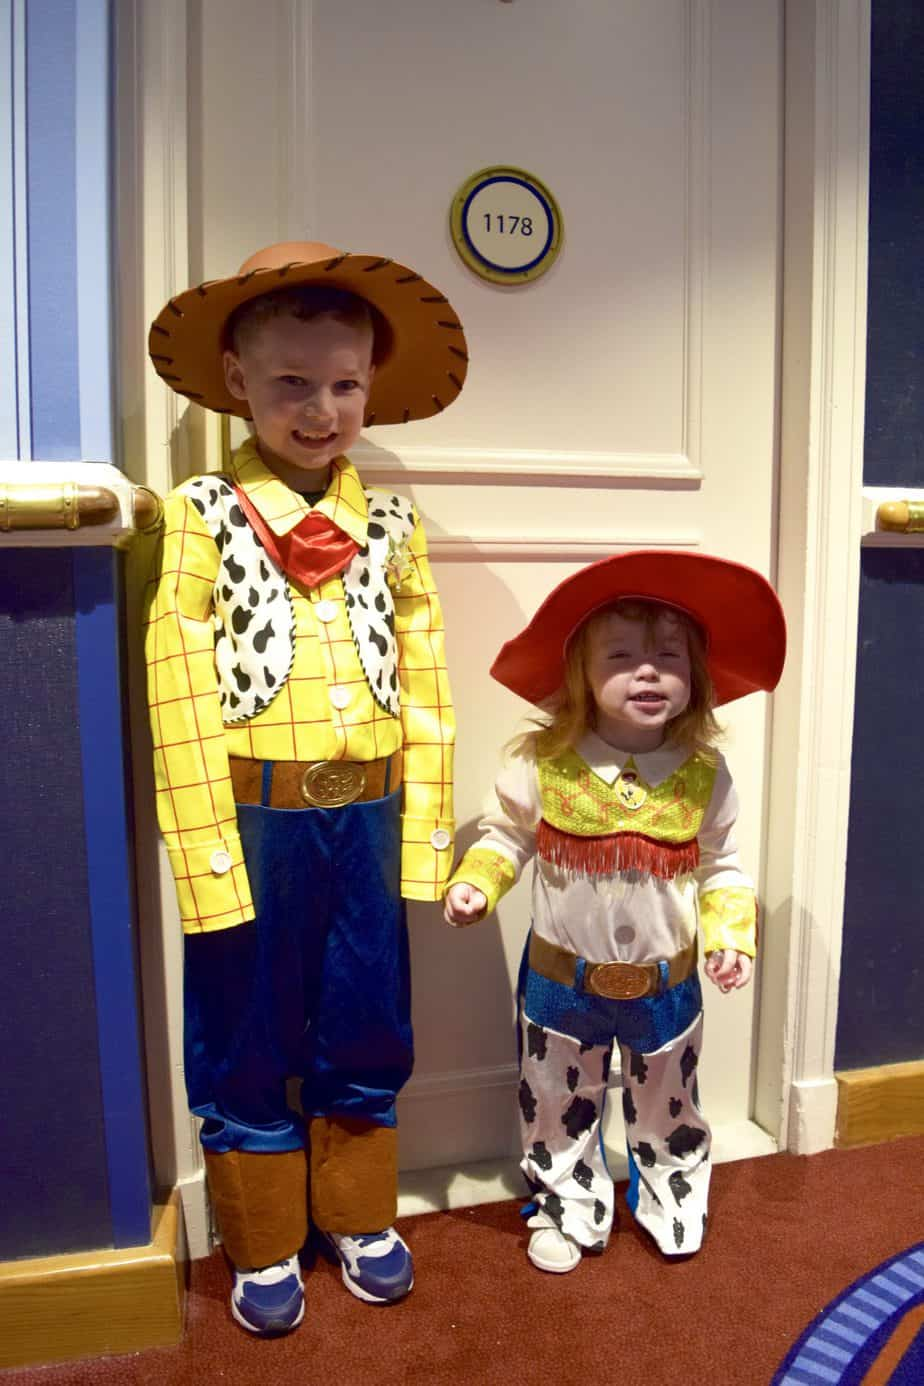 B and W are dressed up as Woody and Jessie from Toy Story for Mickey's Wild West Show at Disneyland Paris